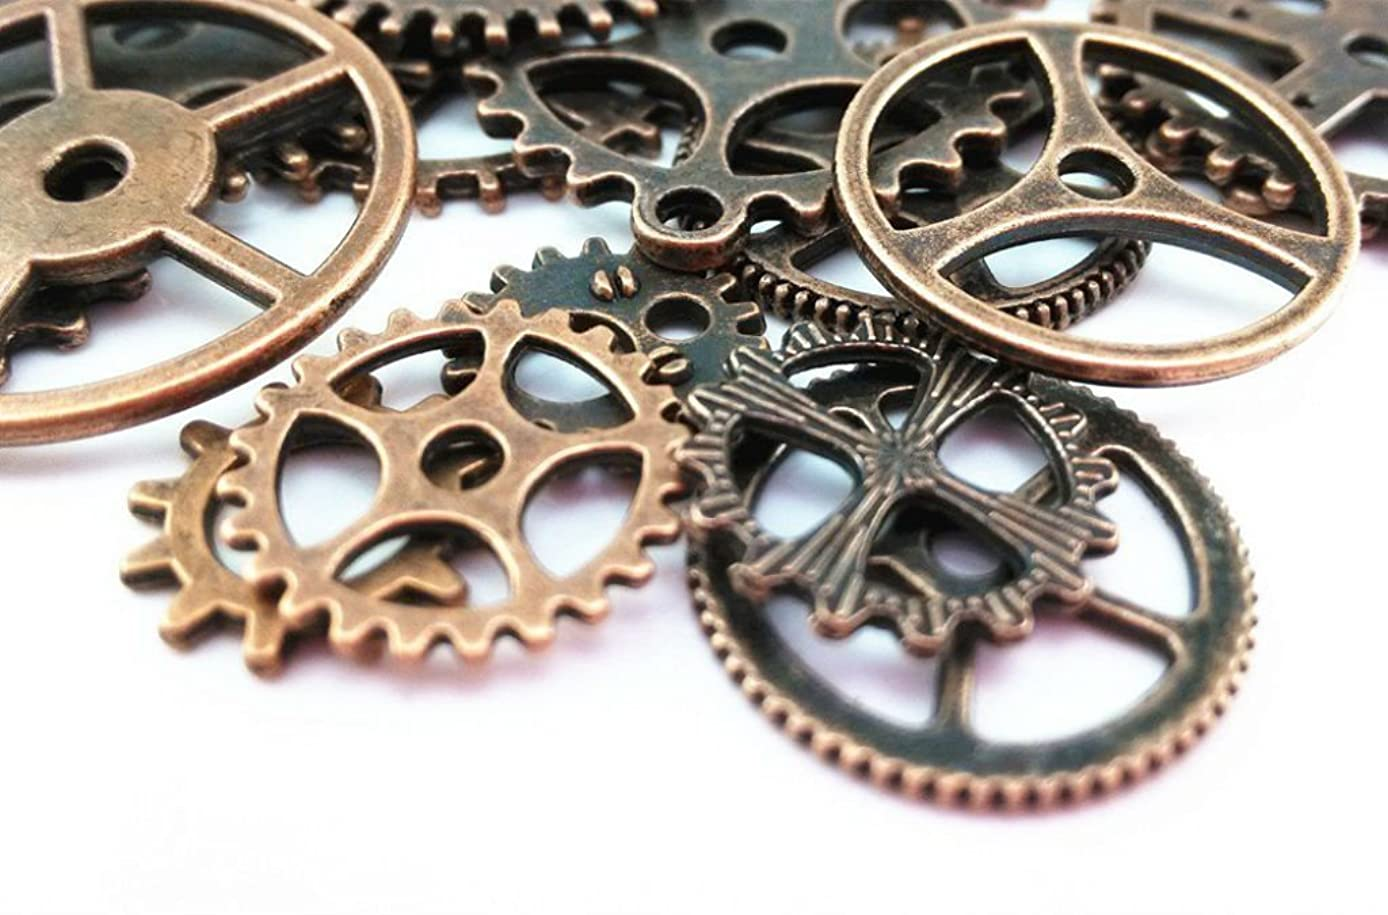 AKOAK 100 Gram Mix Style Antique Steampunk Gears Charms Clock Watch Wheel Gear Pendant Charms for DIY Craft (Red Copper)